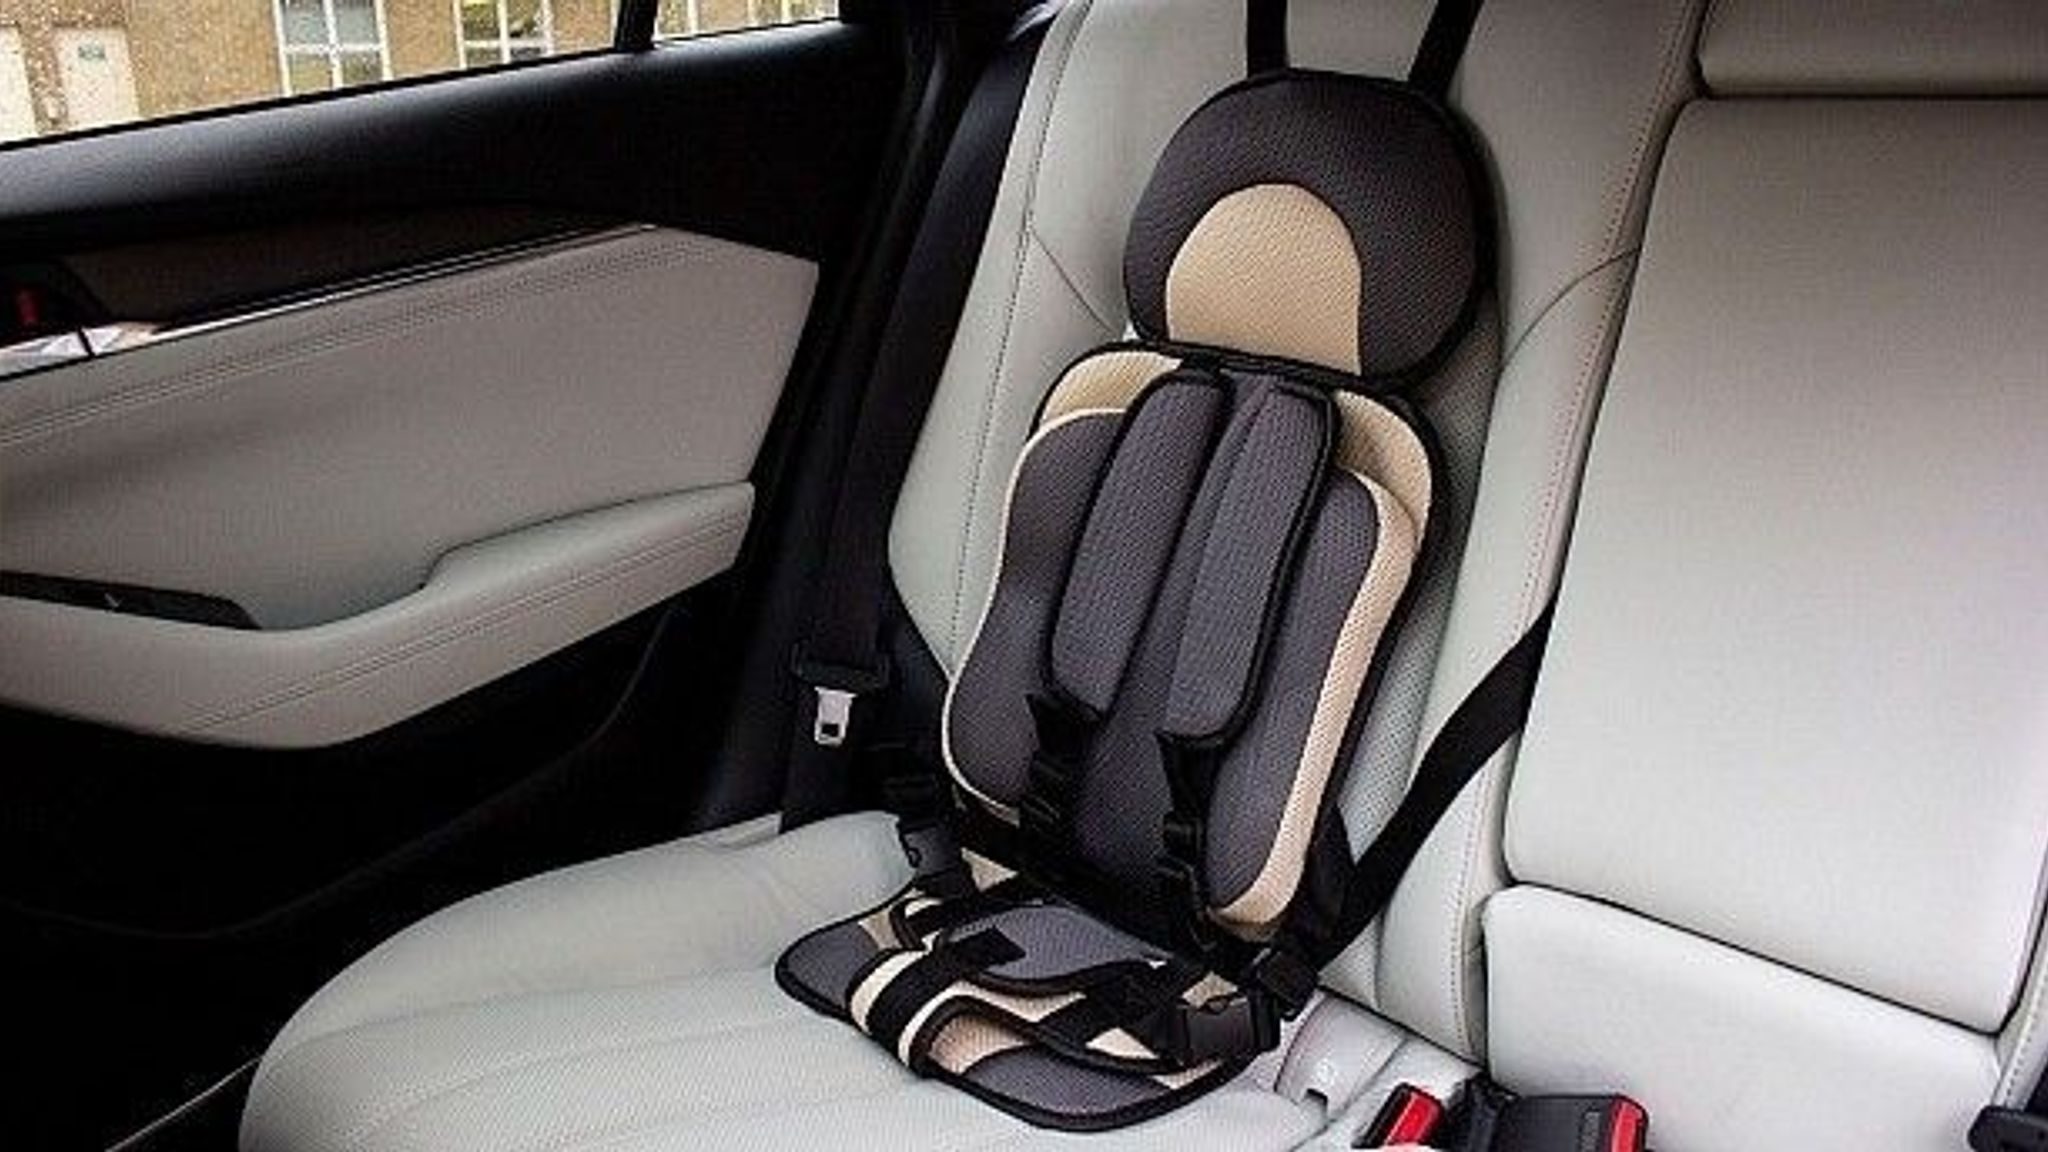 killer' child car seats sold online even though they're illegal | uk